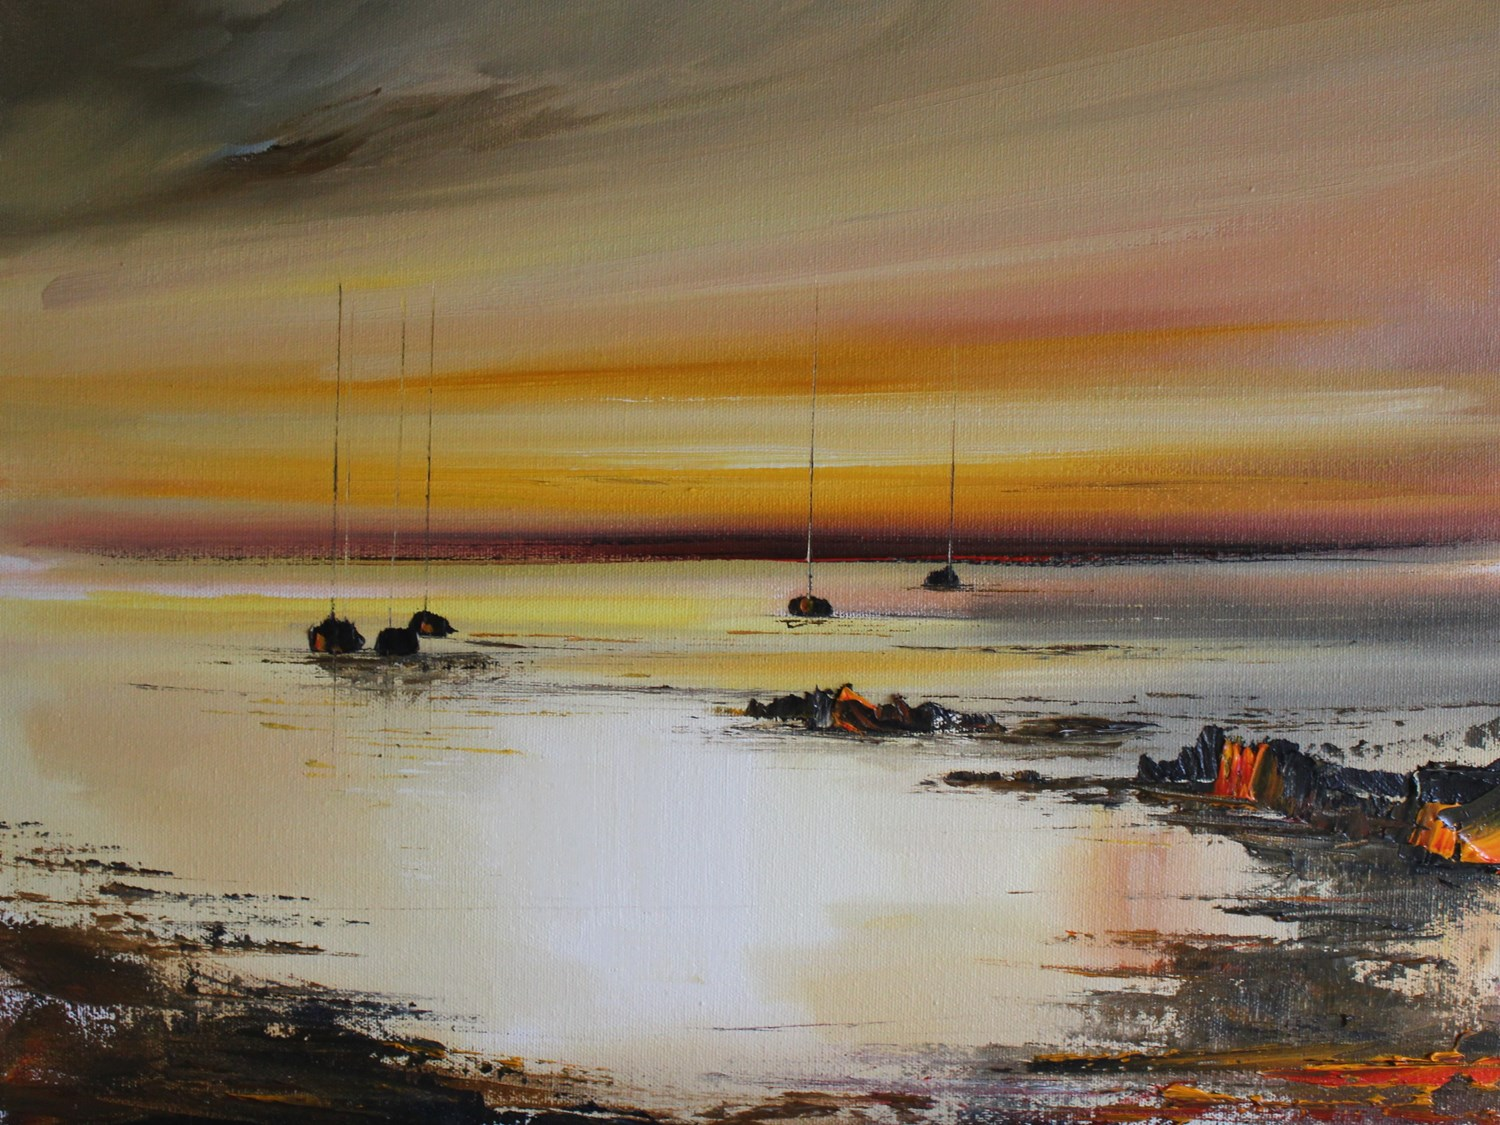 'At Twilight' by artist Rosanne Barr